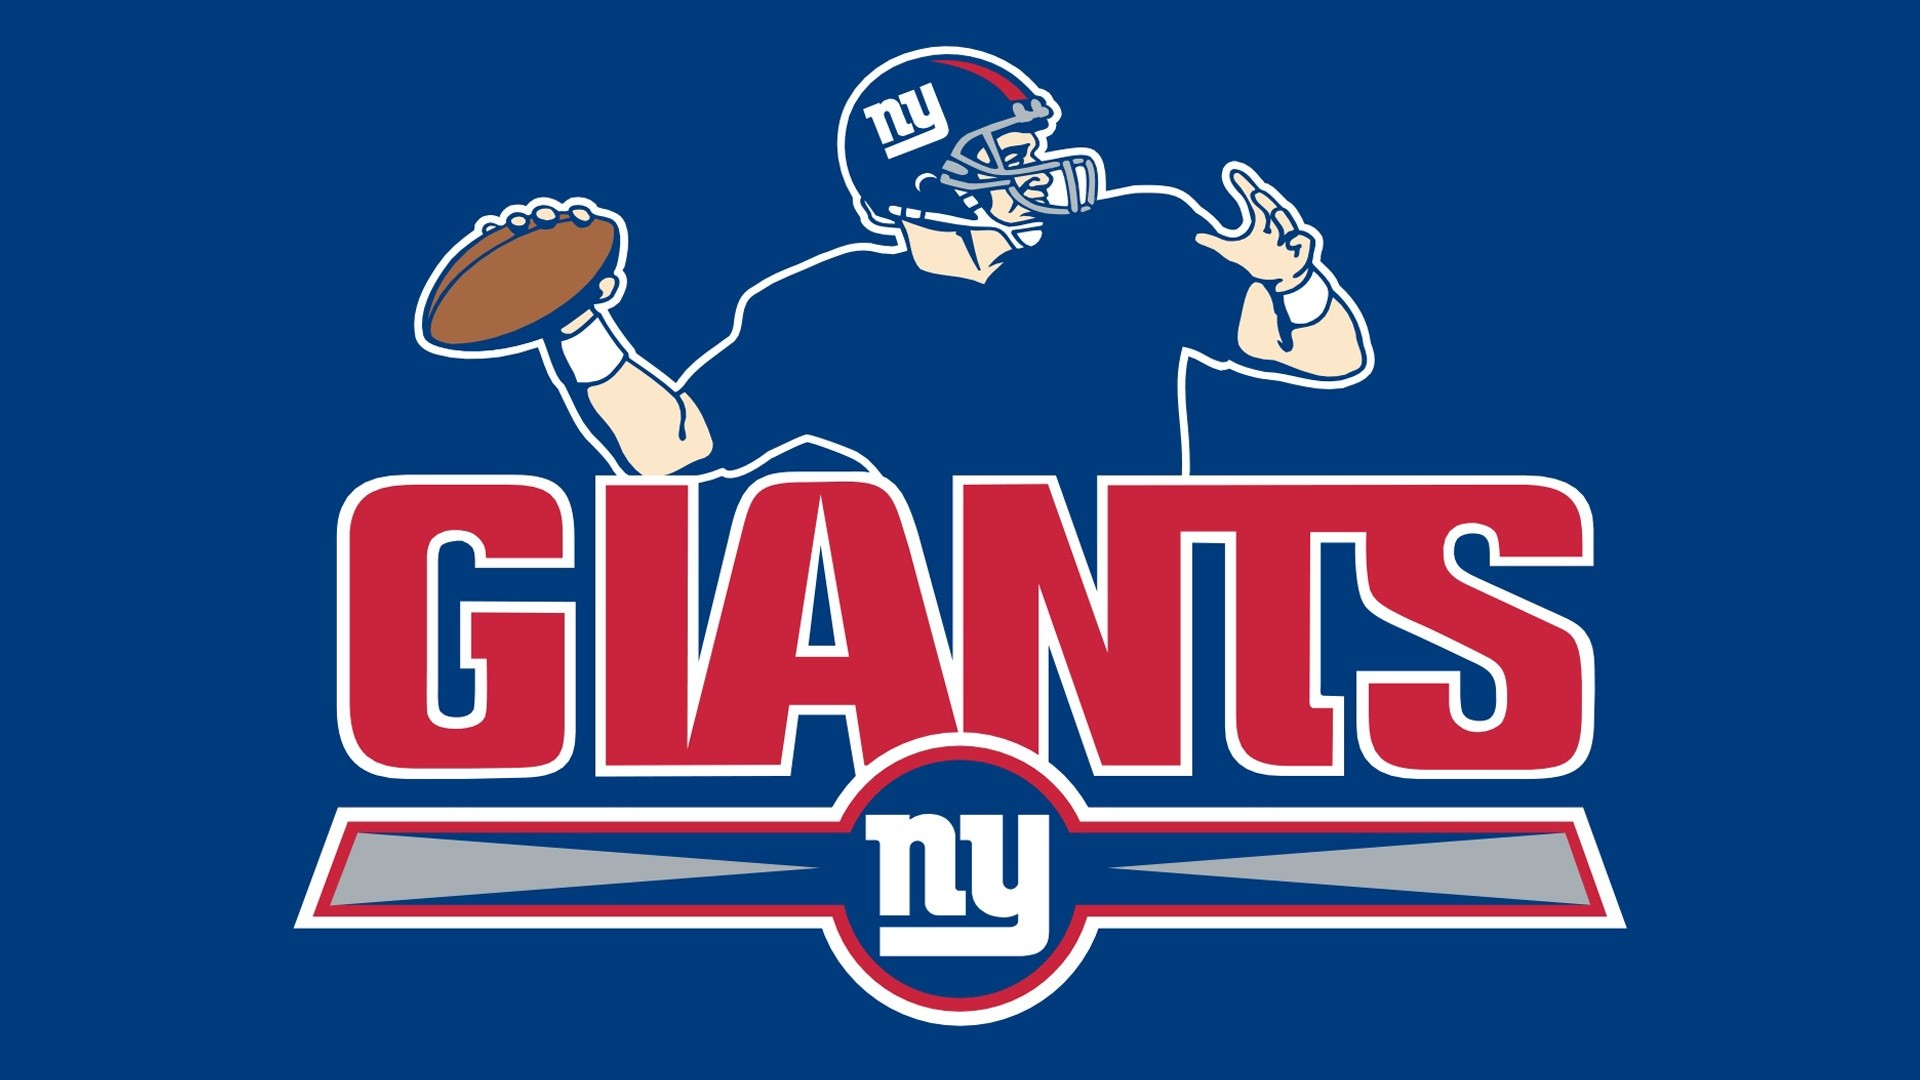 1920x1080 ny giants wallpaper and screensaver